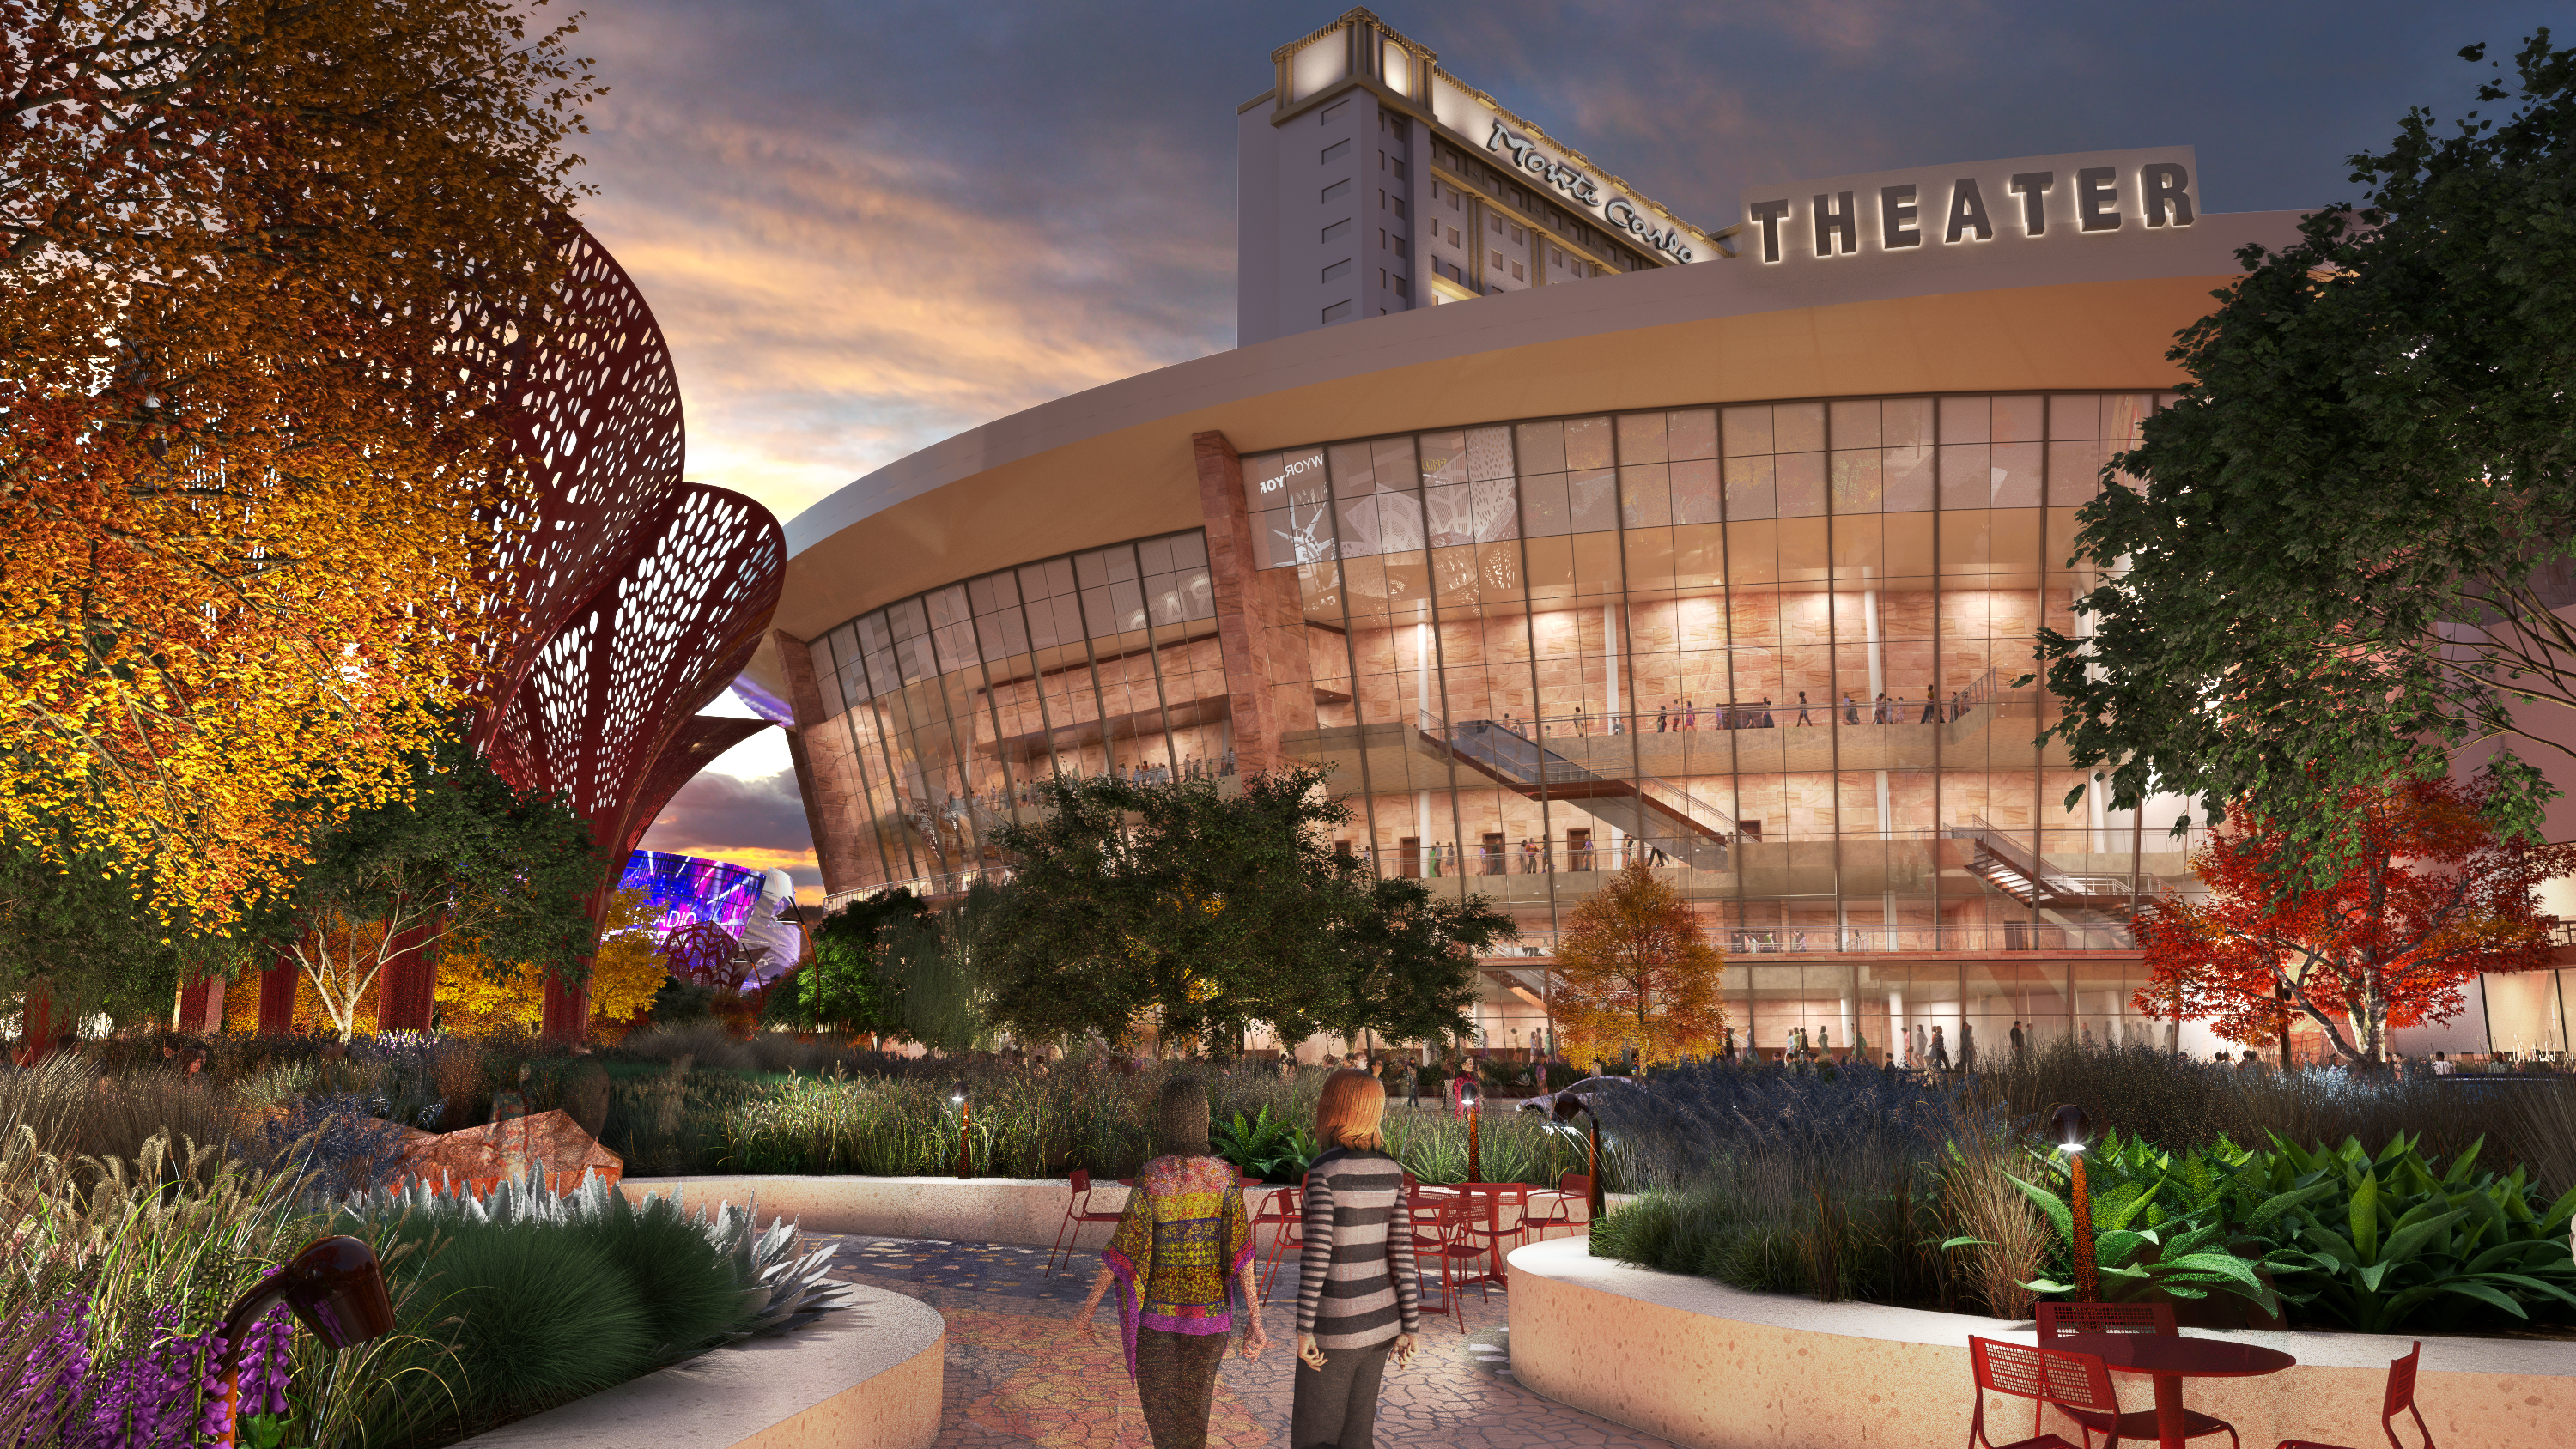 The kats report monte carlos new theater could remake the strips concert look las vegas weekly